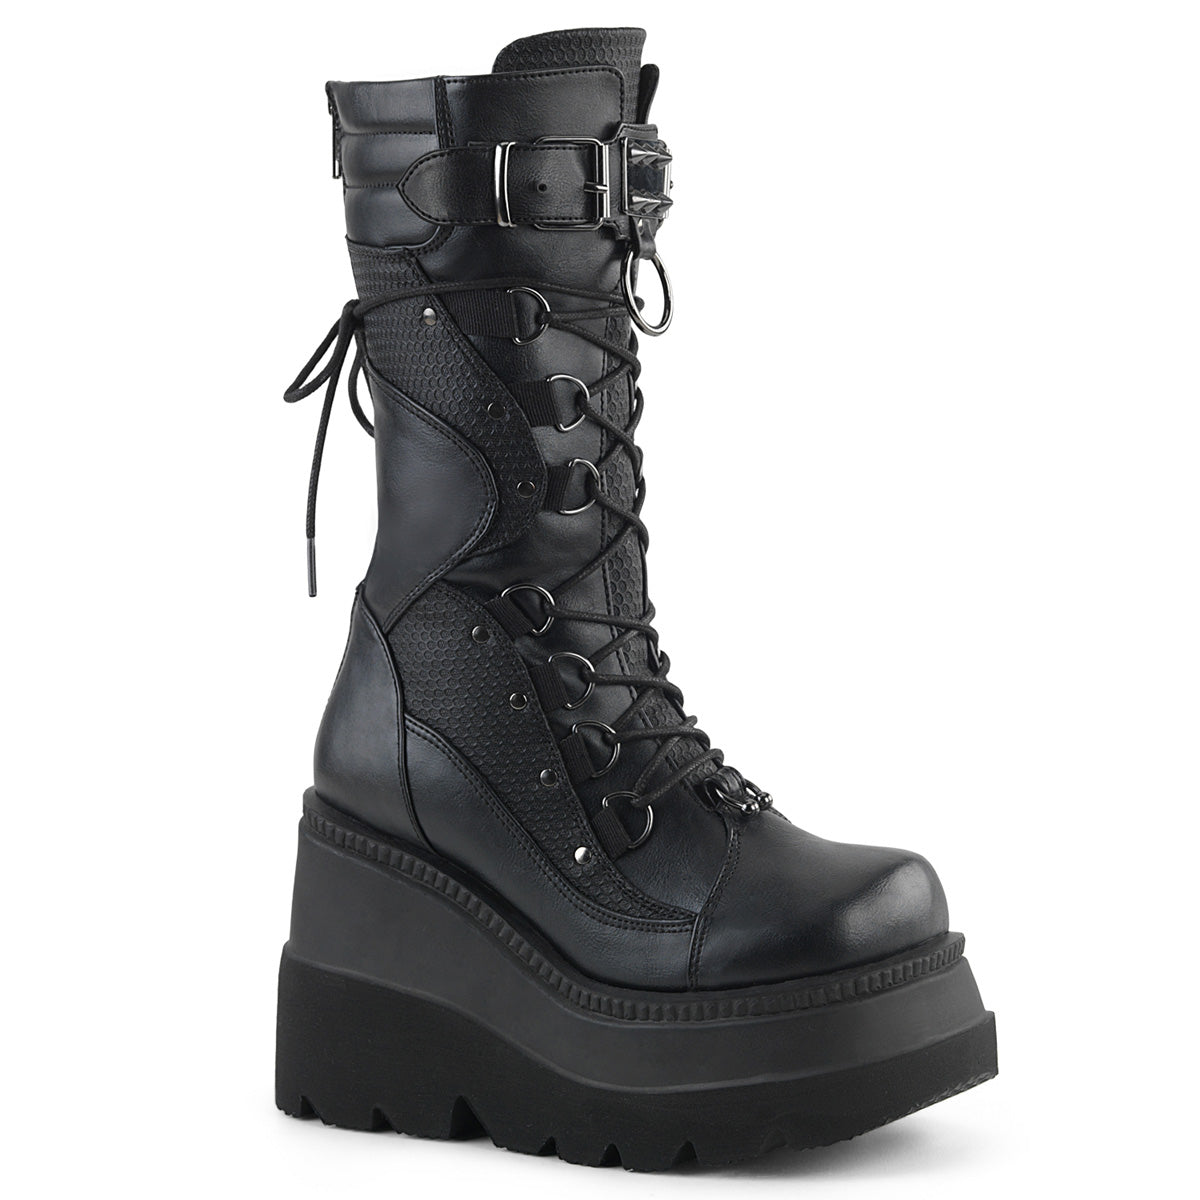 "Demonia SHAKER-70 Black 4 1/2"" Wedge Platform Lace-Up Mid-Calf Boot With Curvy Contrast Panel Designs on Vamp, Featuring Horseshoe Ring Ornament and Buckle Strap With Spike Studded Metal Plate and A Large O-Ring,  Metal Back Zip Closure"